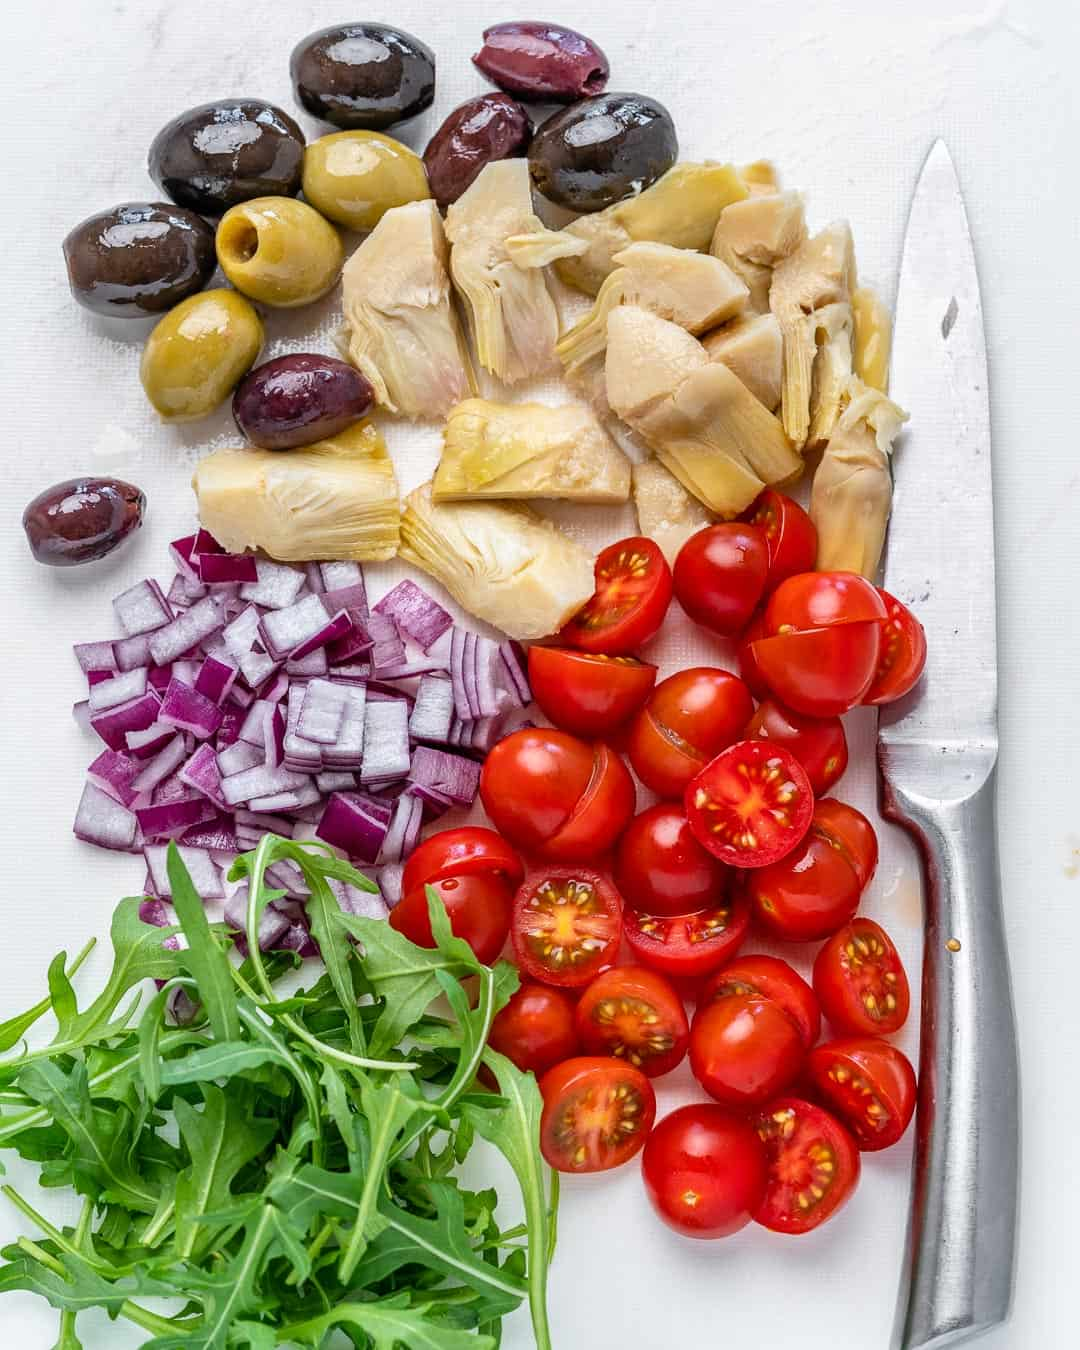 chopped pasta salad ingredients- tomatoes, onions, arugula, olives, and pickled artichoke